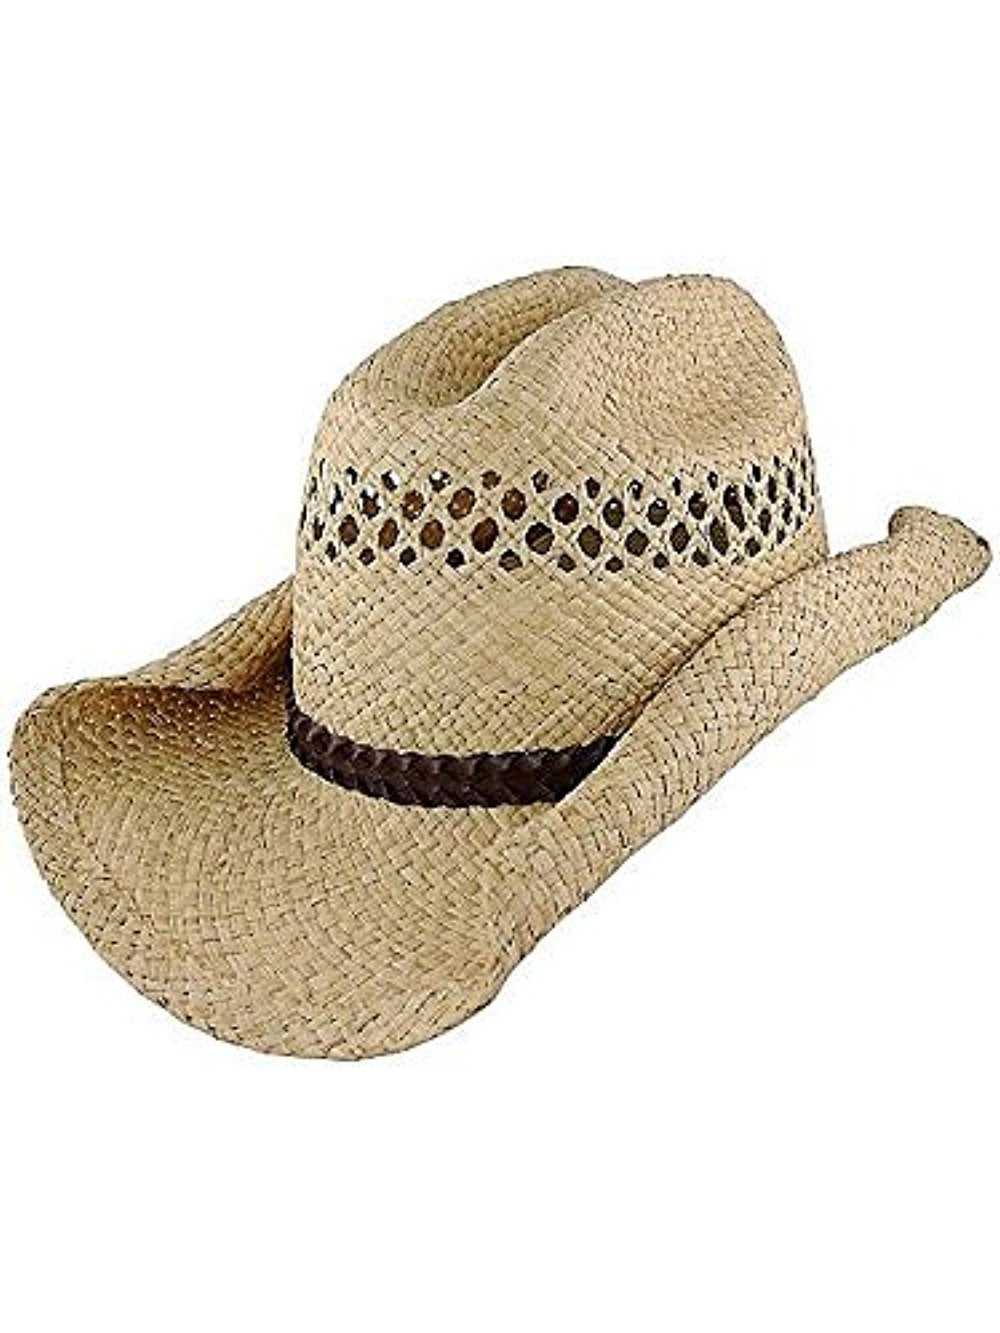 Toddler Rolled Brim Cowboy Hat